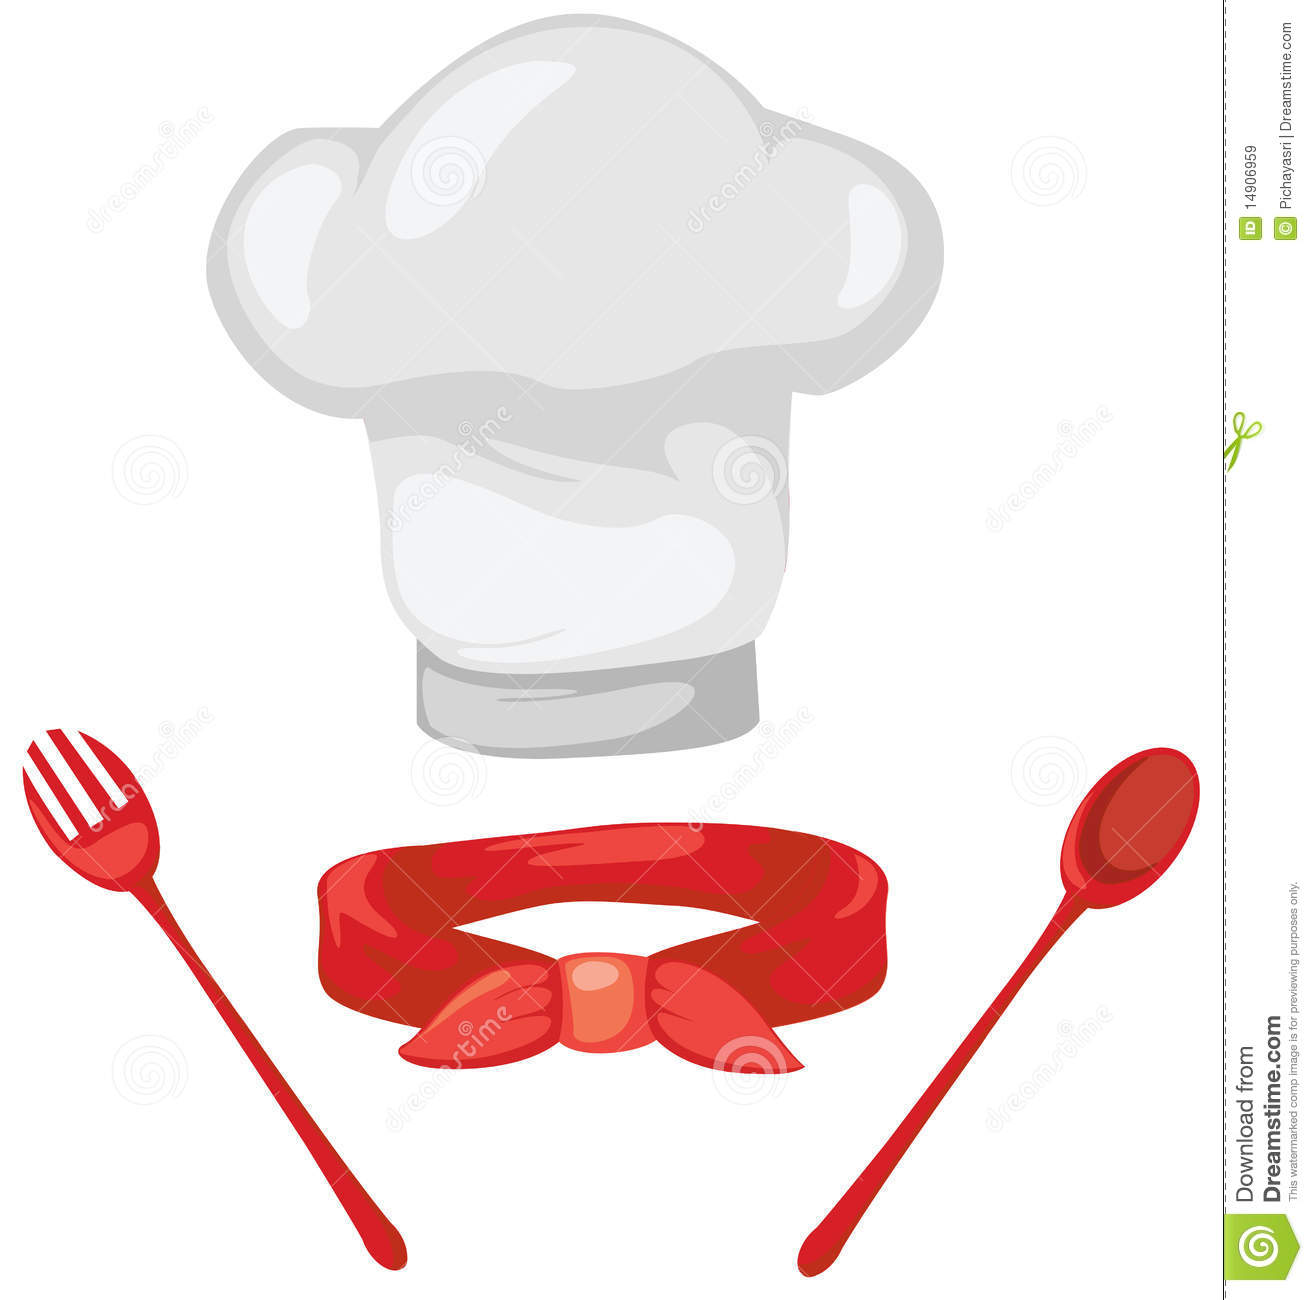 hight resolution of set of chef hat red scarf spoon and fork